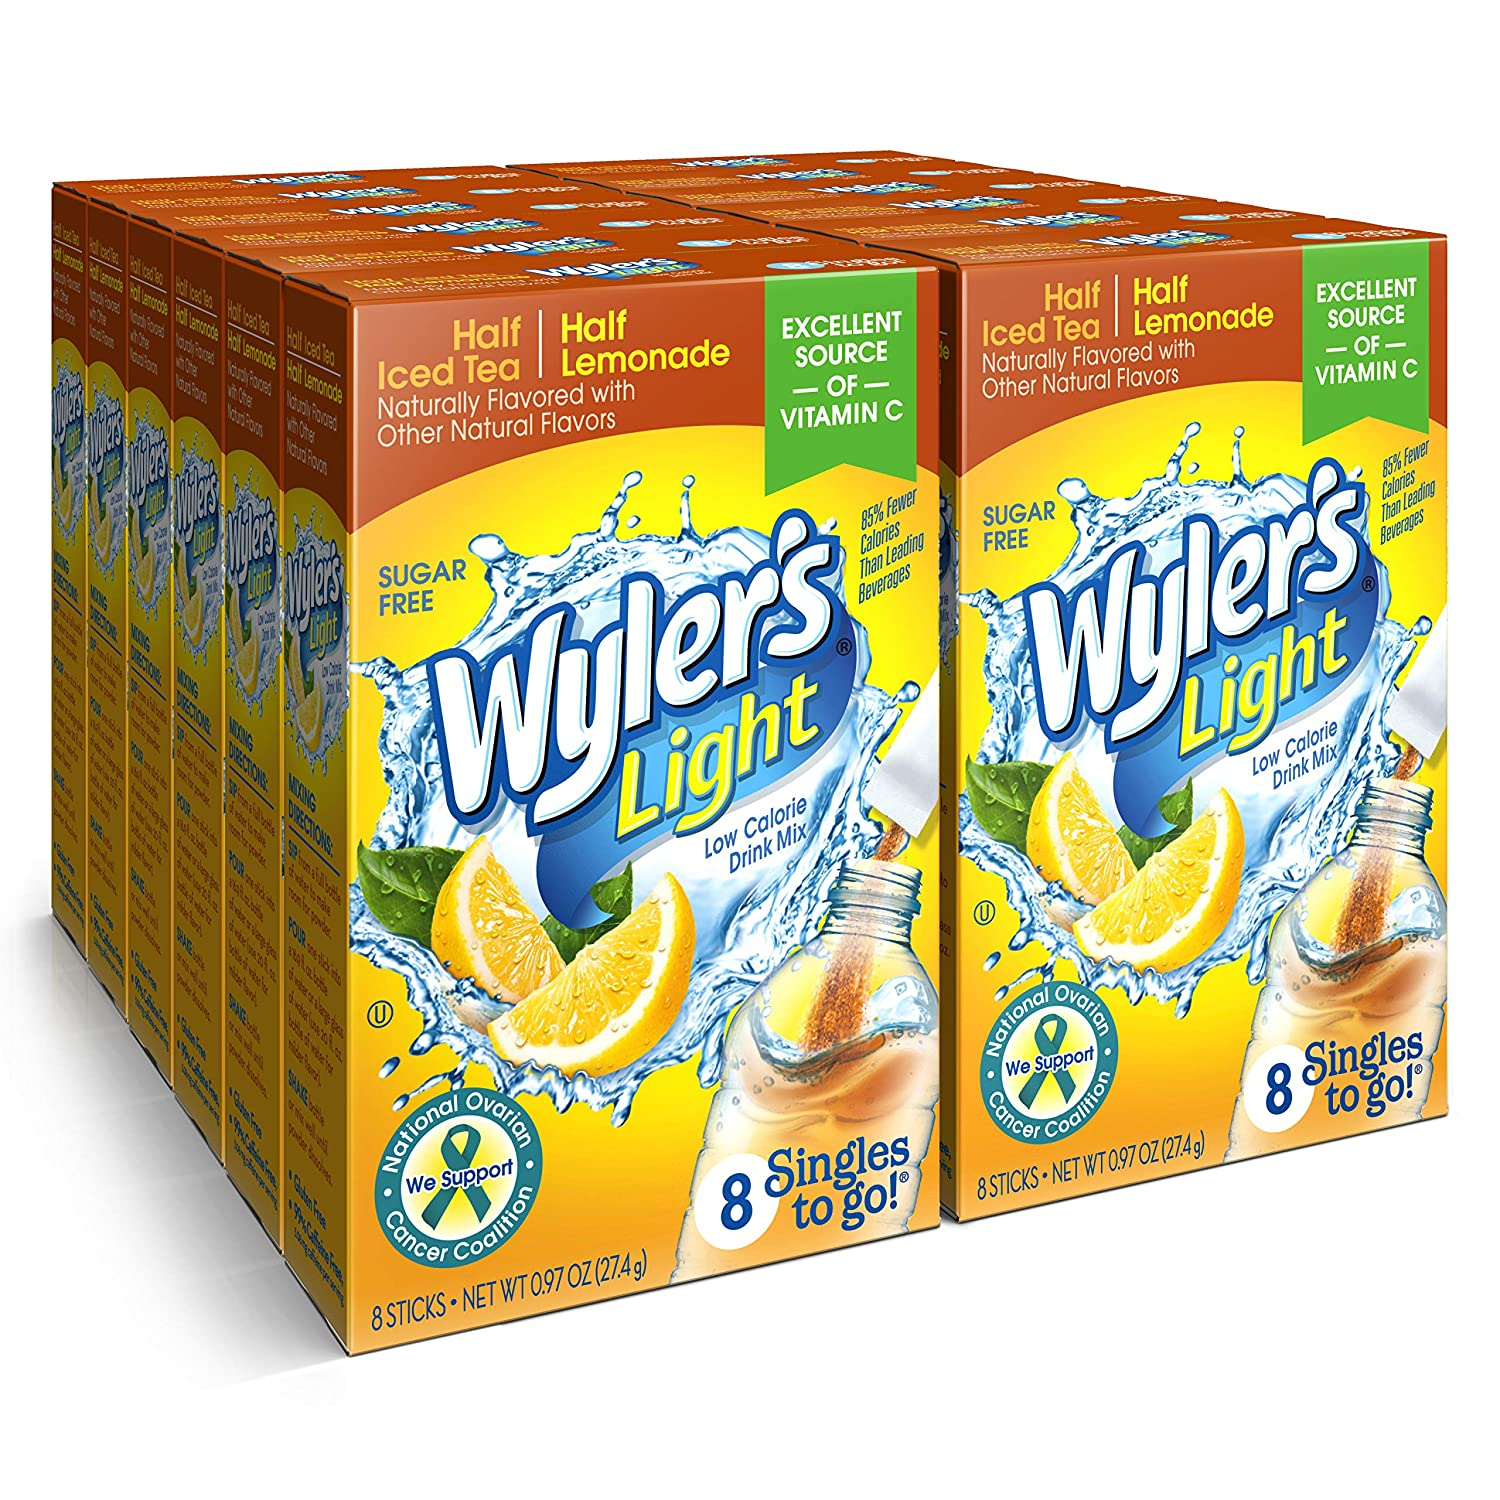 Branded goods Wyler's Light Singles To Go Powder Water Hal Mix Drink Now on sale Packets